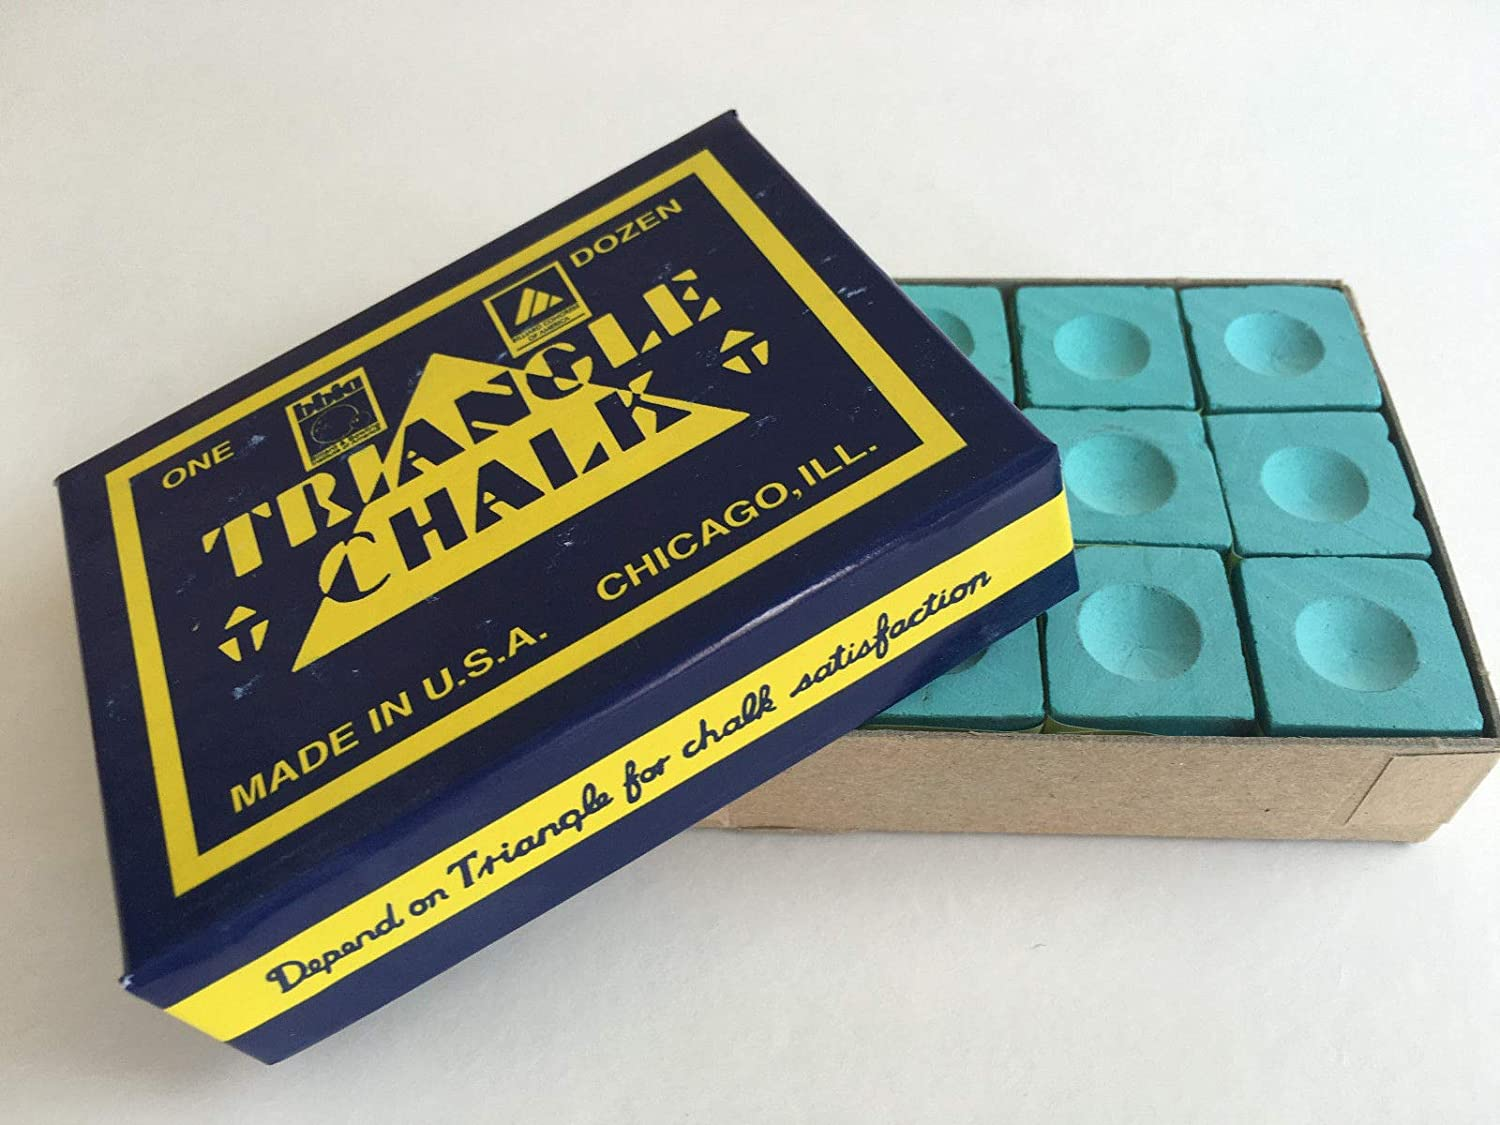 12 PCS OF TRIANGLE PRO CHALK FOR THE SERIOUS PLAYER** by TRIANGLE CHALK